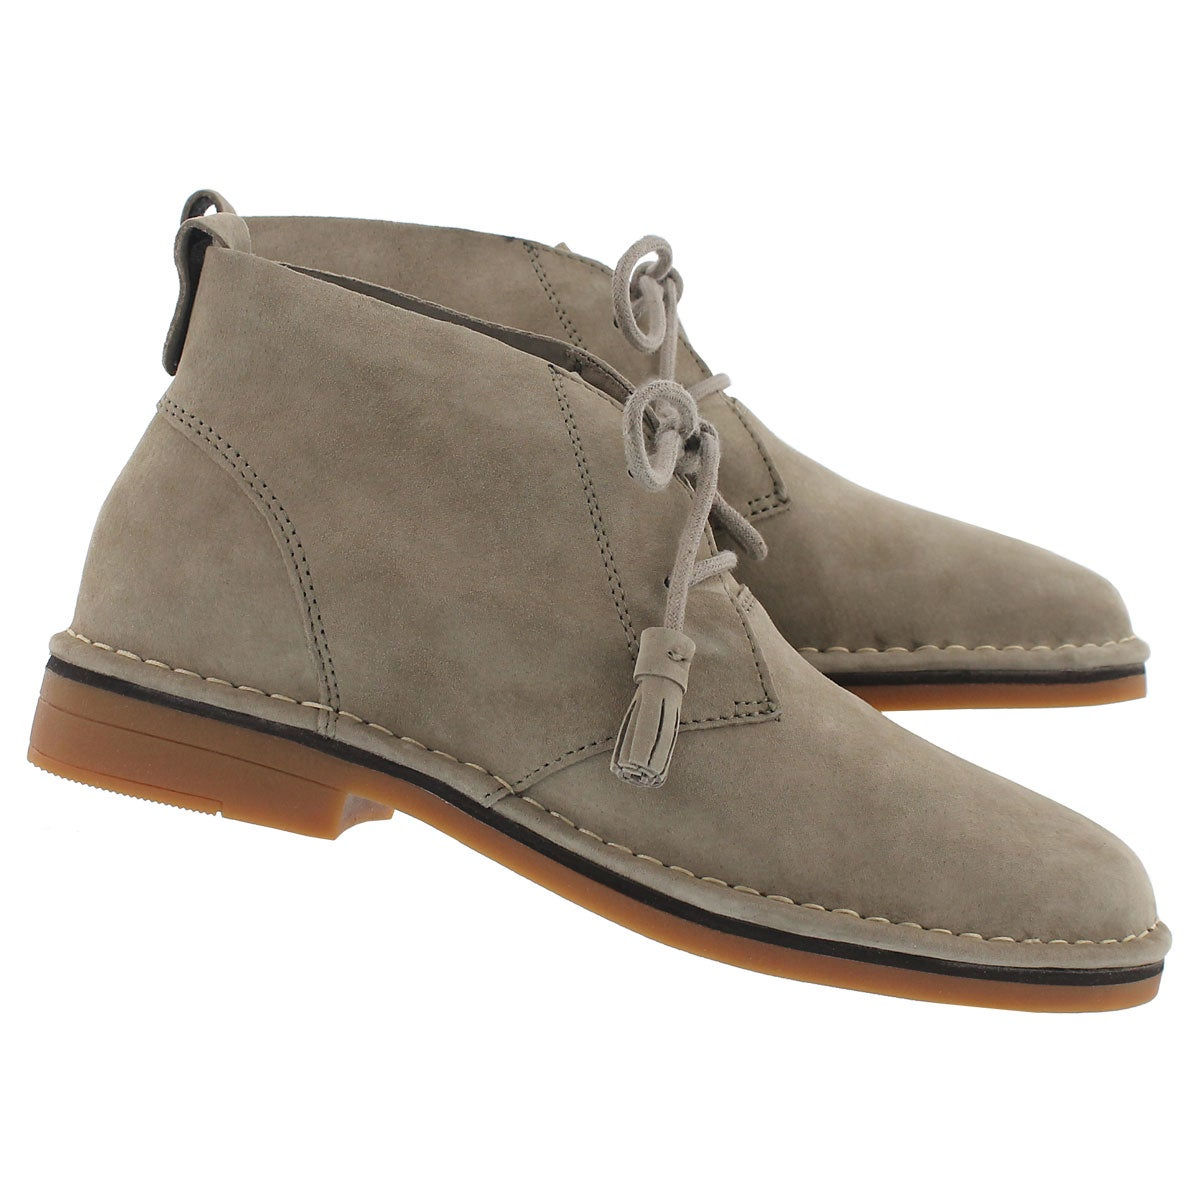 Lds Cyra Catelyn taupe chukka boot